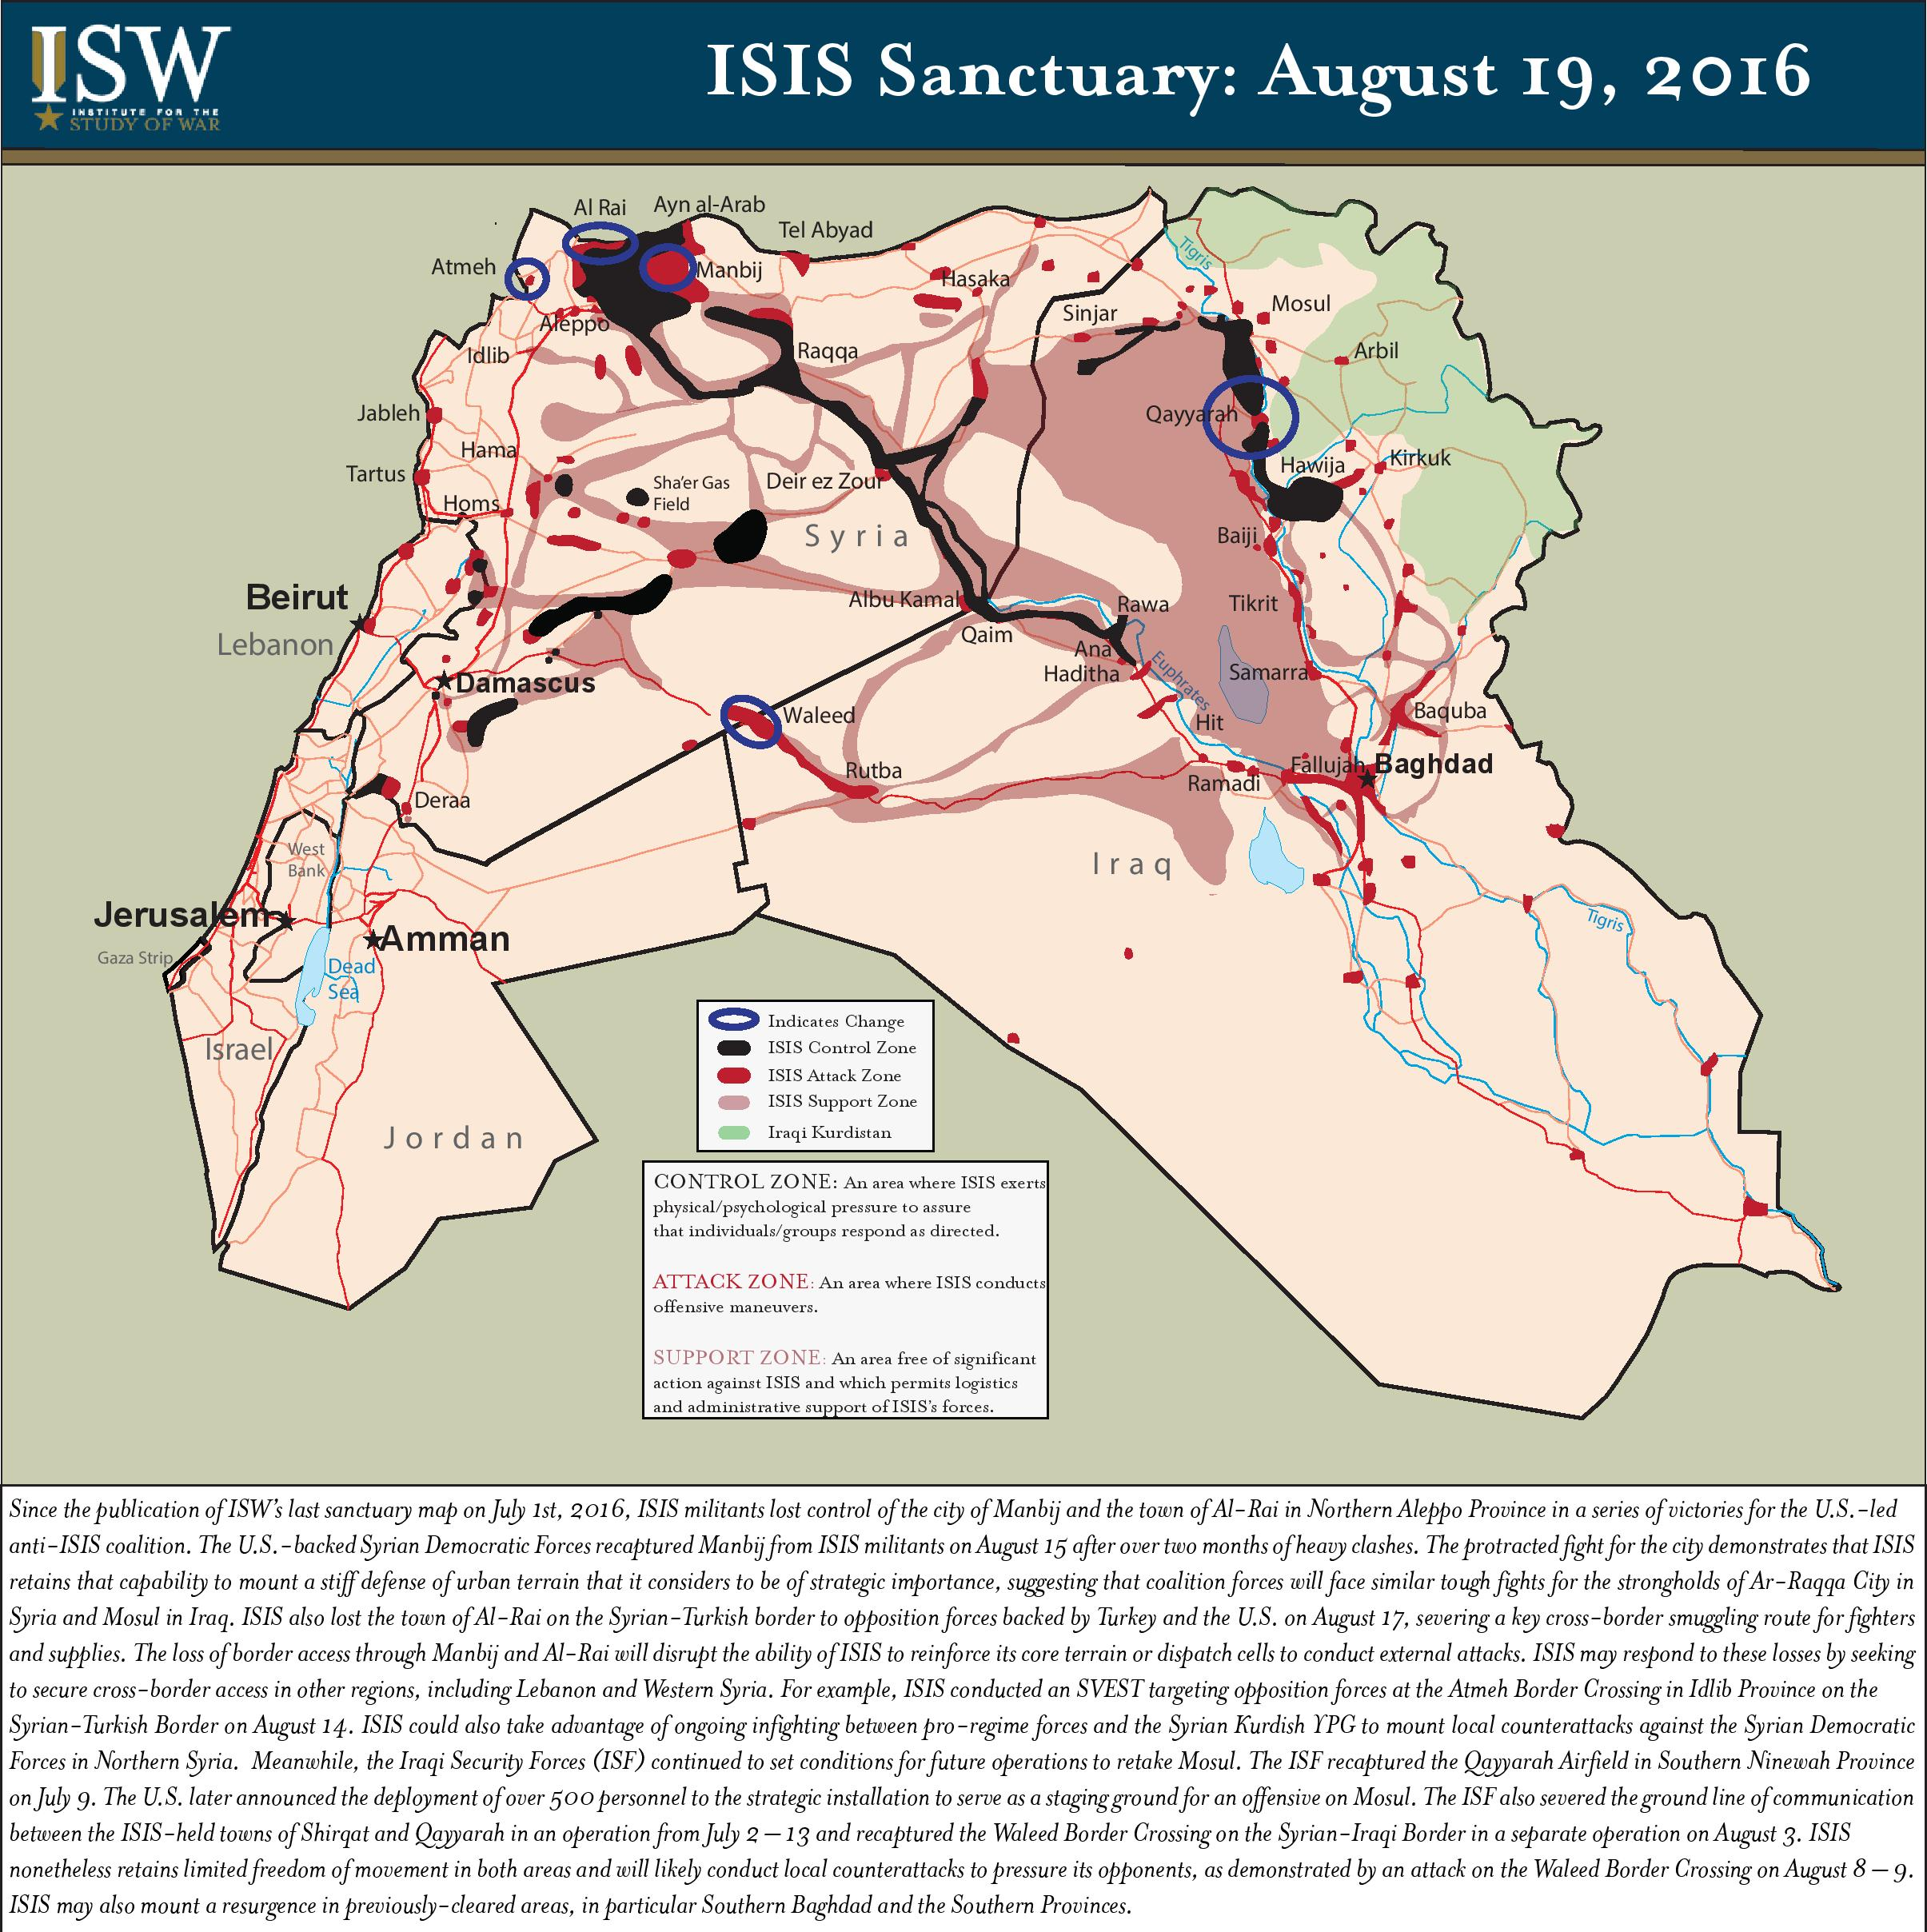 ISIS Sanctuary August 19 2016-page-001